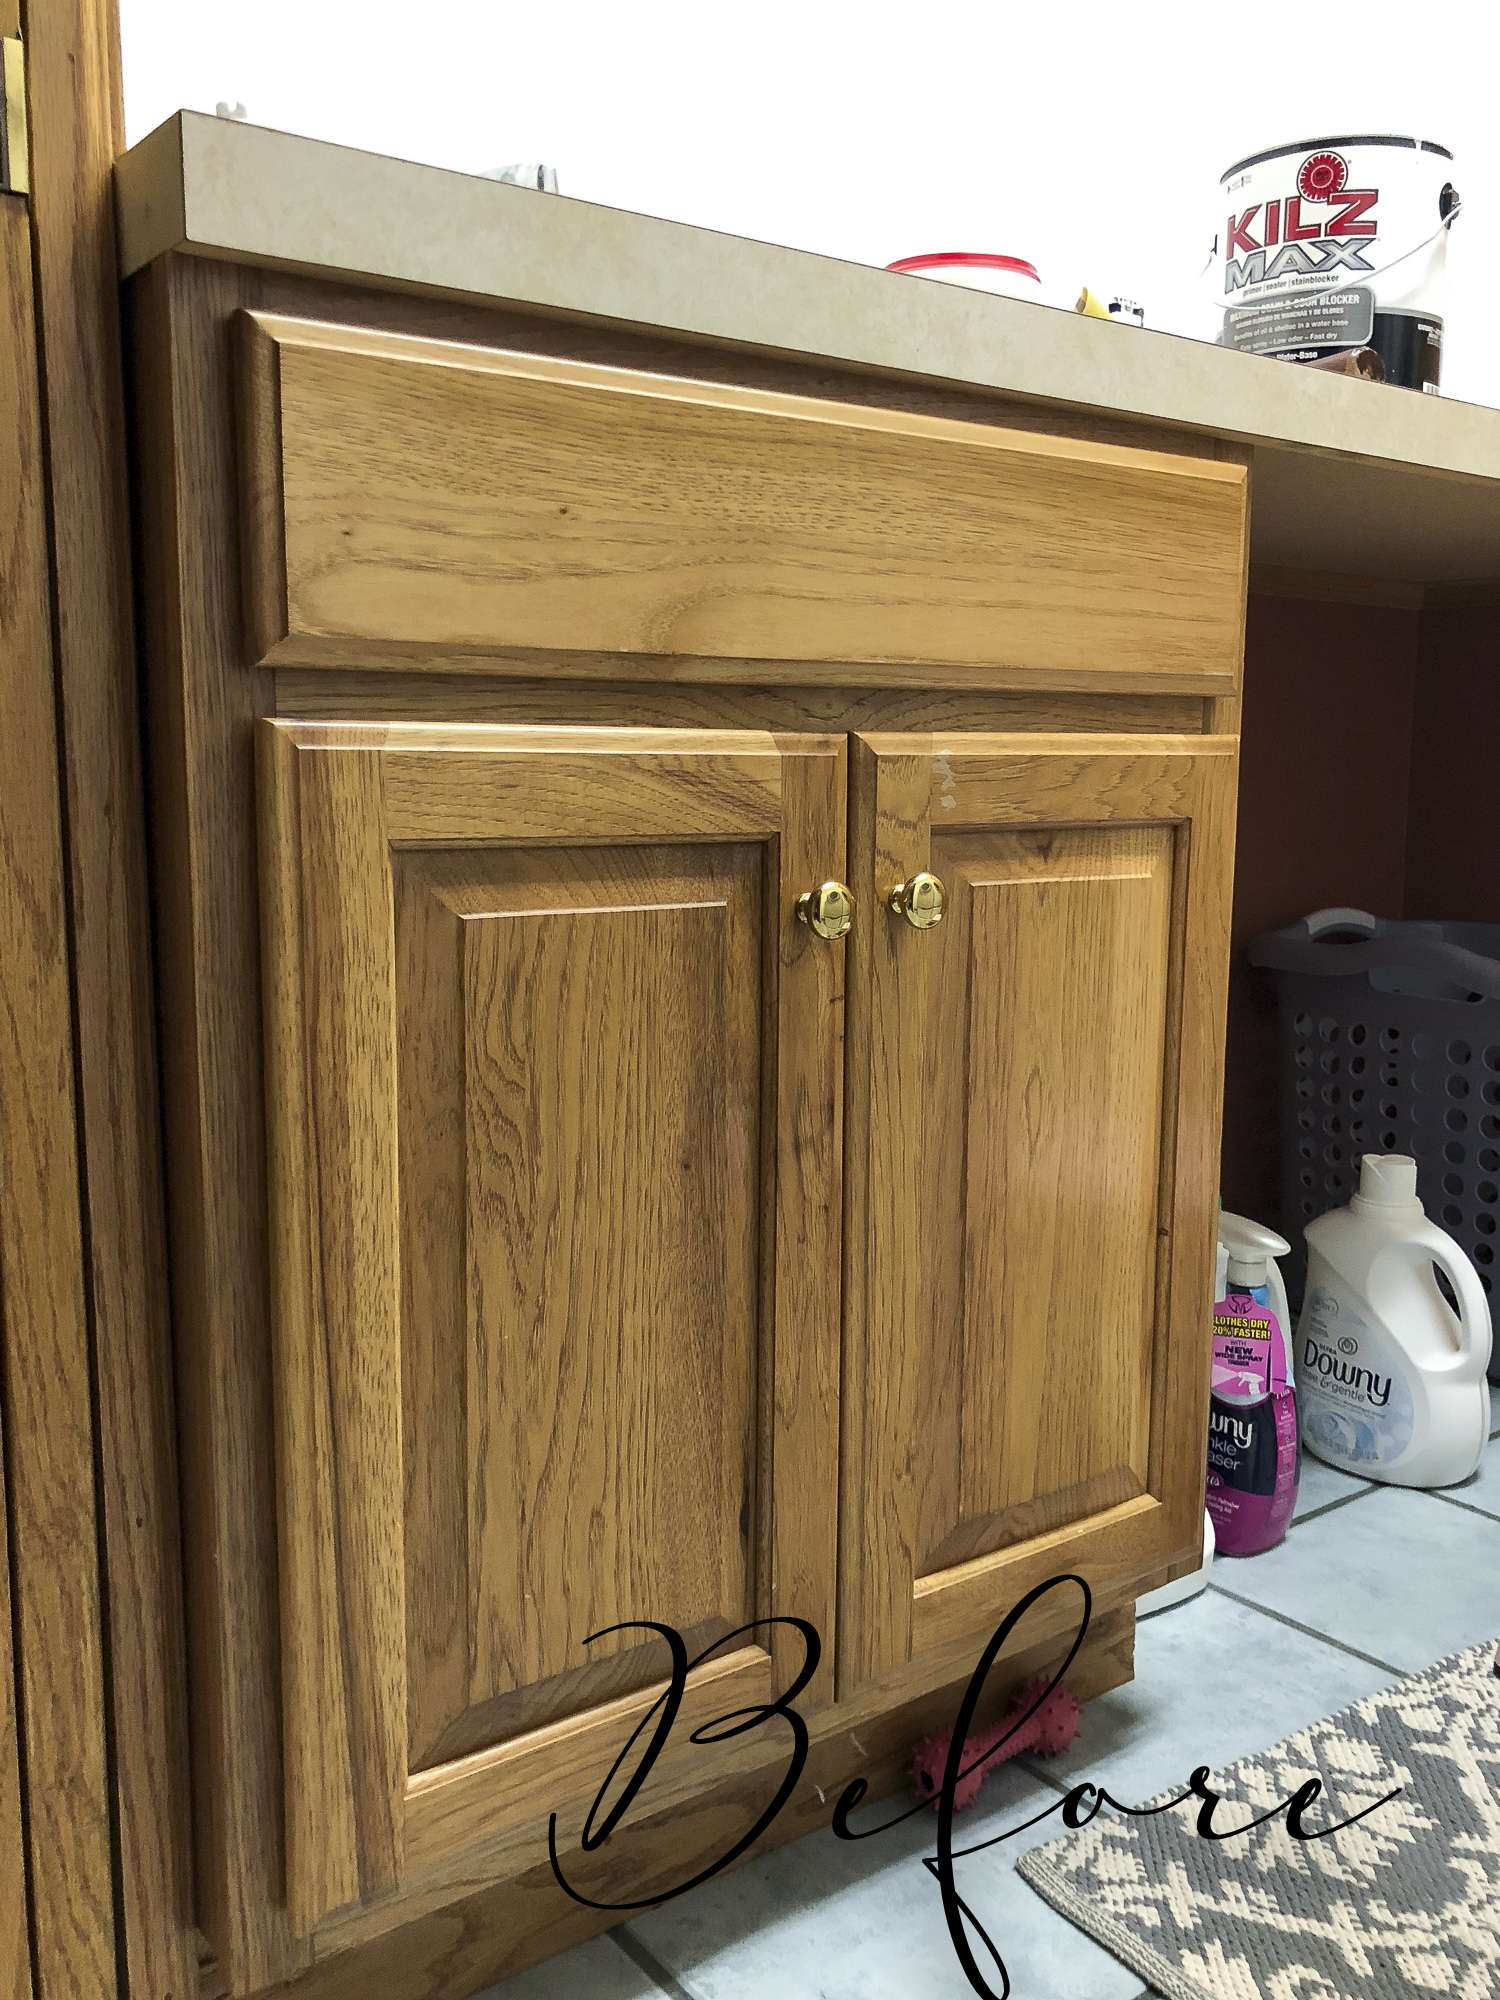 Is your laundry room in need of a facelift? See how I take my laundry room decor and more from dark and dated to beautiful form and function, all for $100!